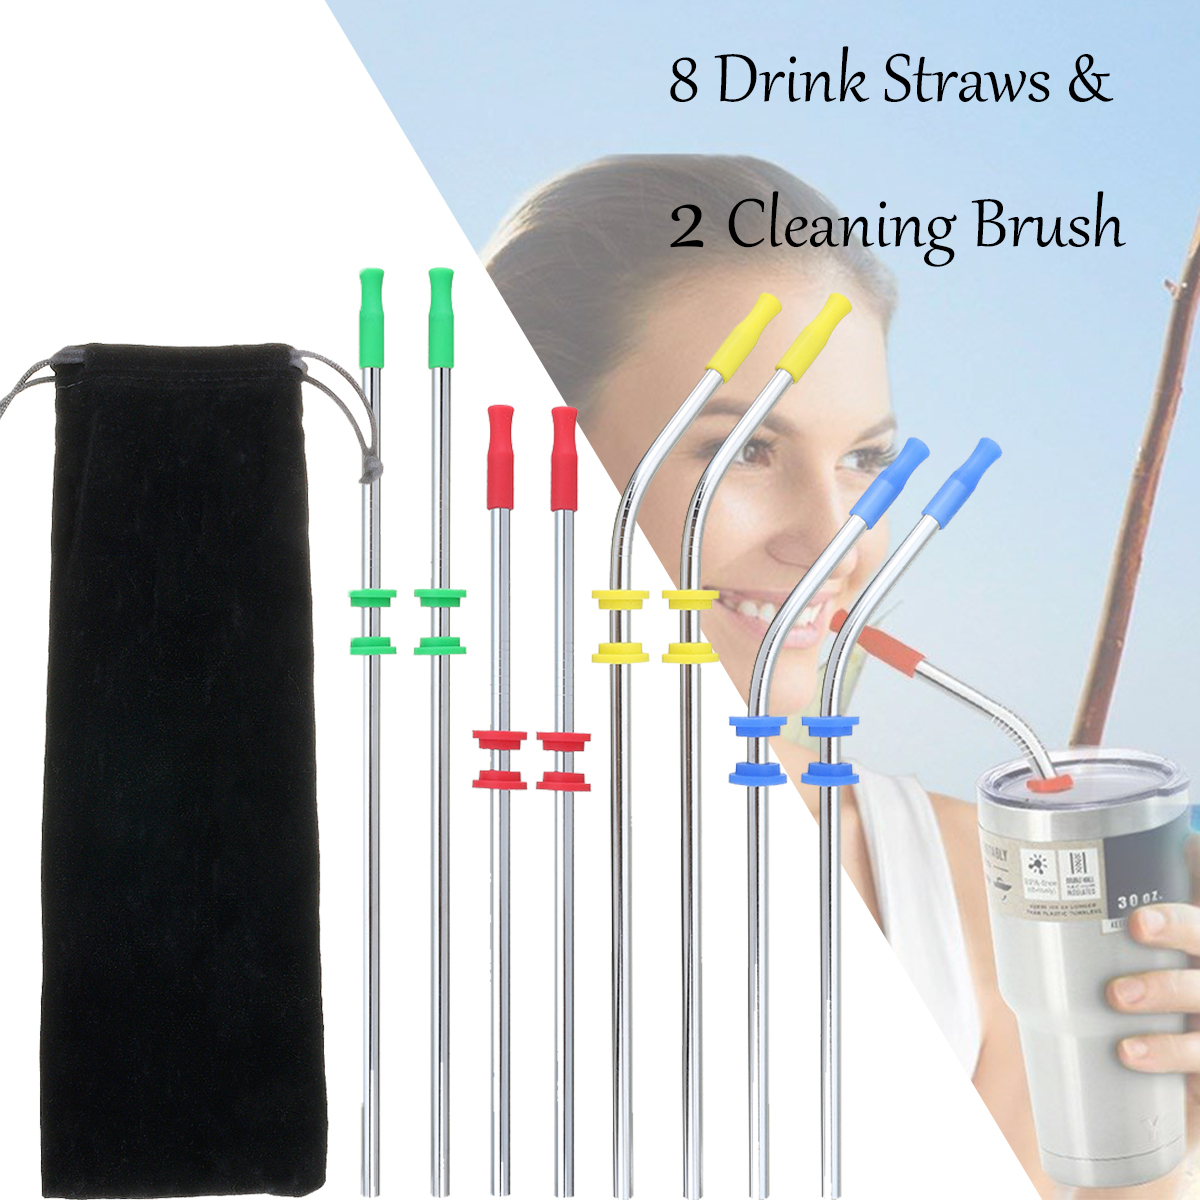 Reusable Drinking Straw Stainless Steel Drink Straws Cleaning Brushes Set with Silicone head